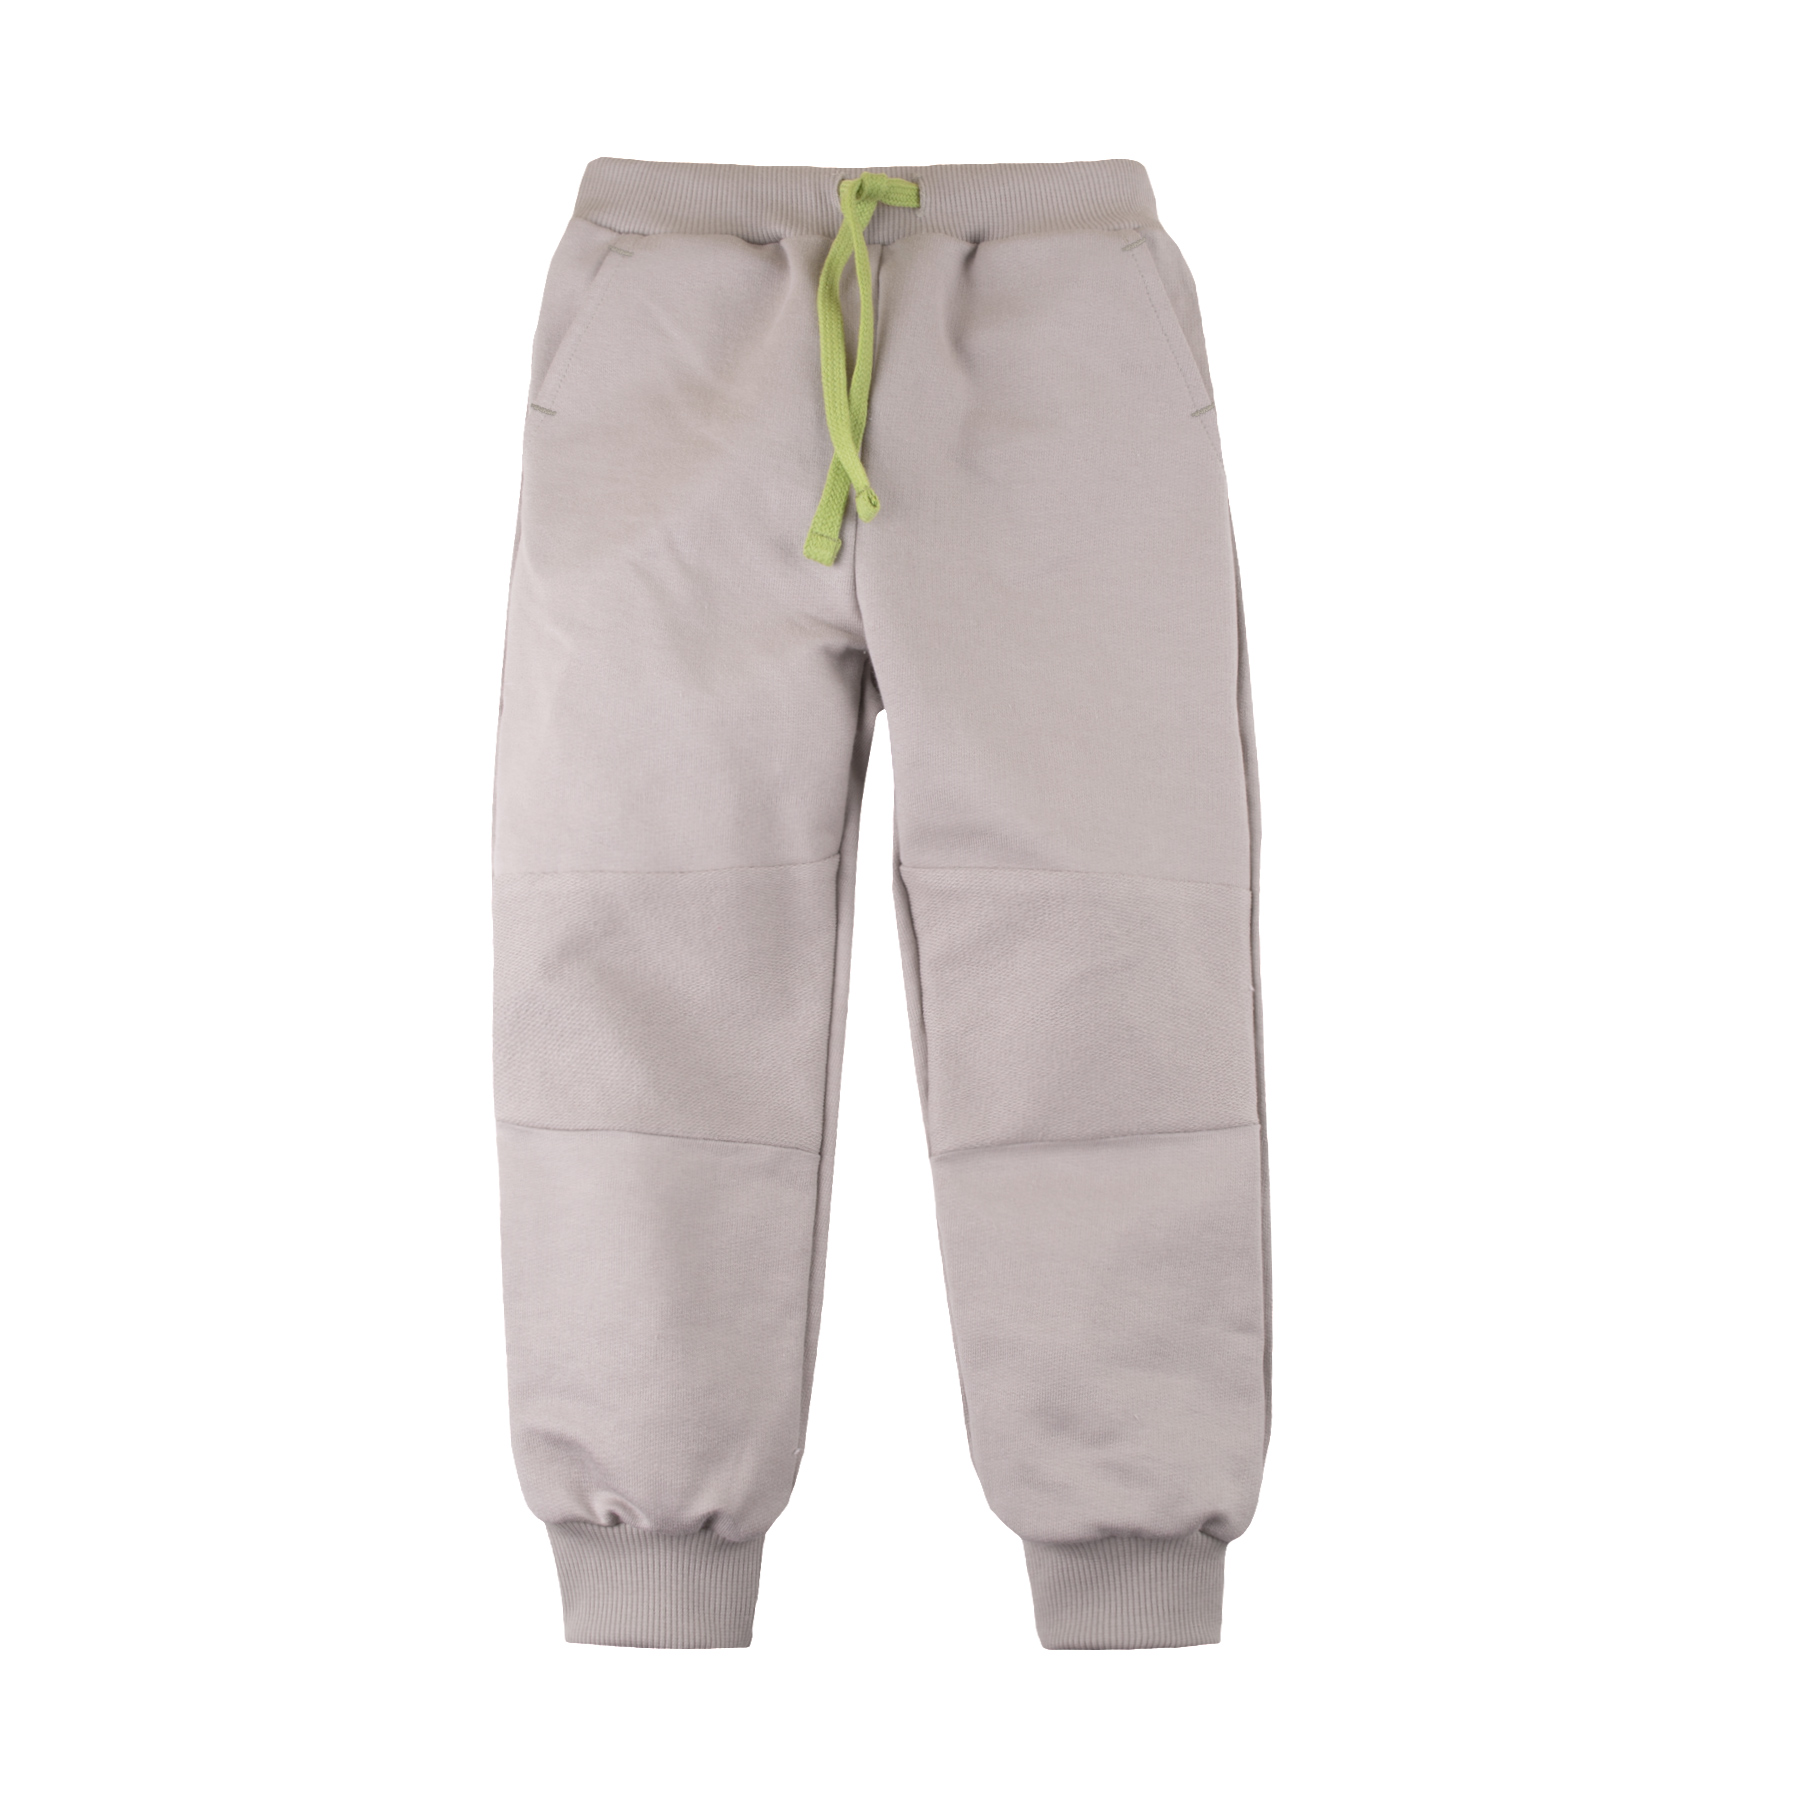 Pants For Boy 'Tetris Bossa Nova 490B-461 цена